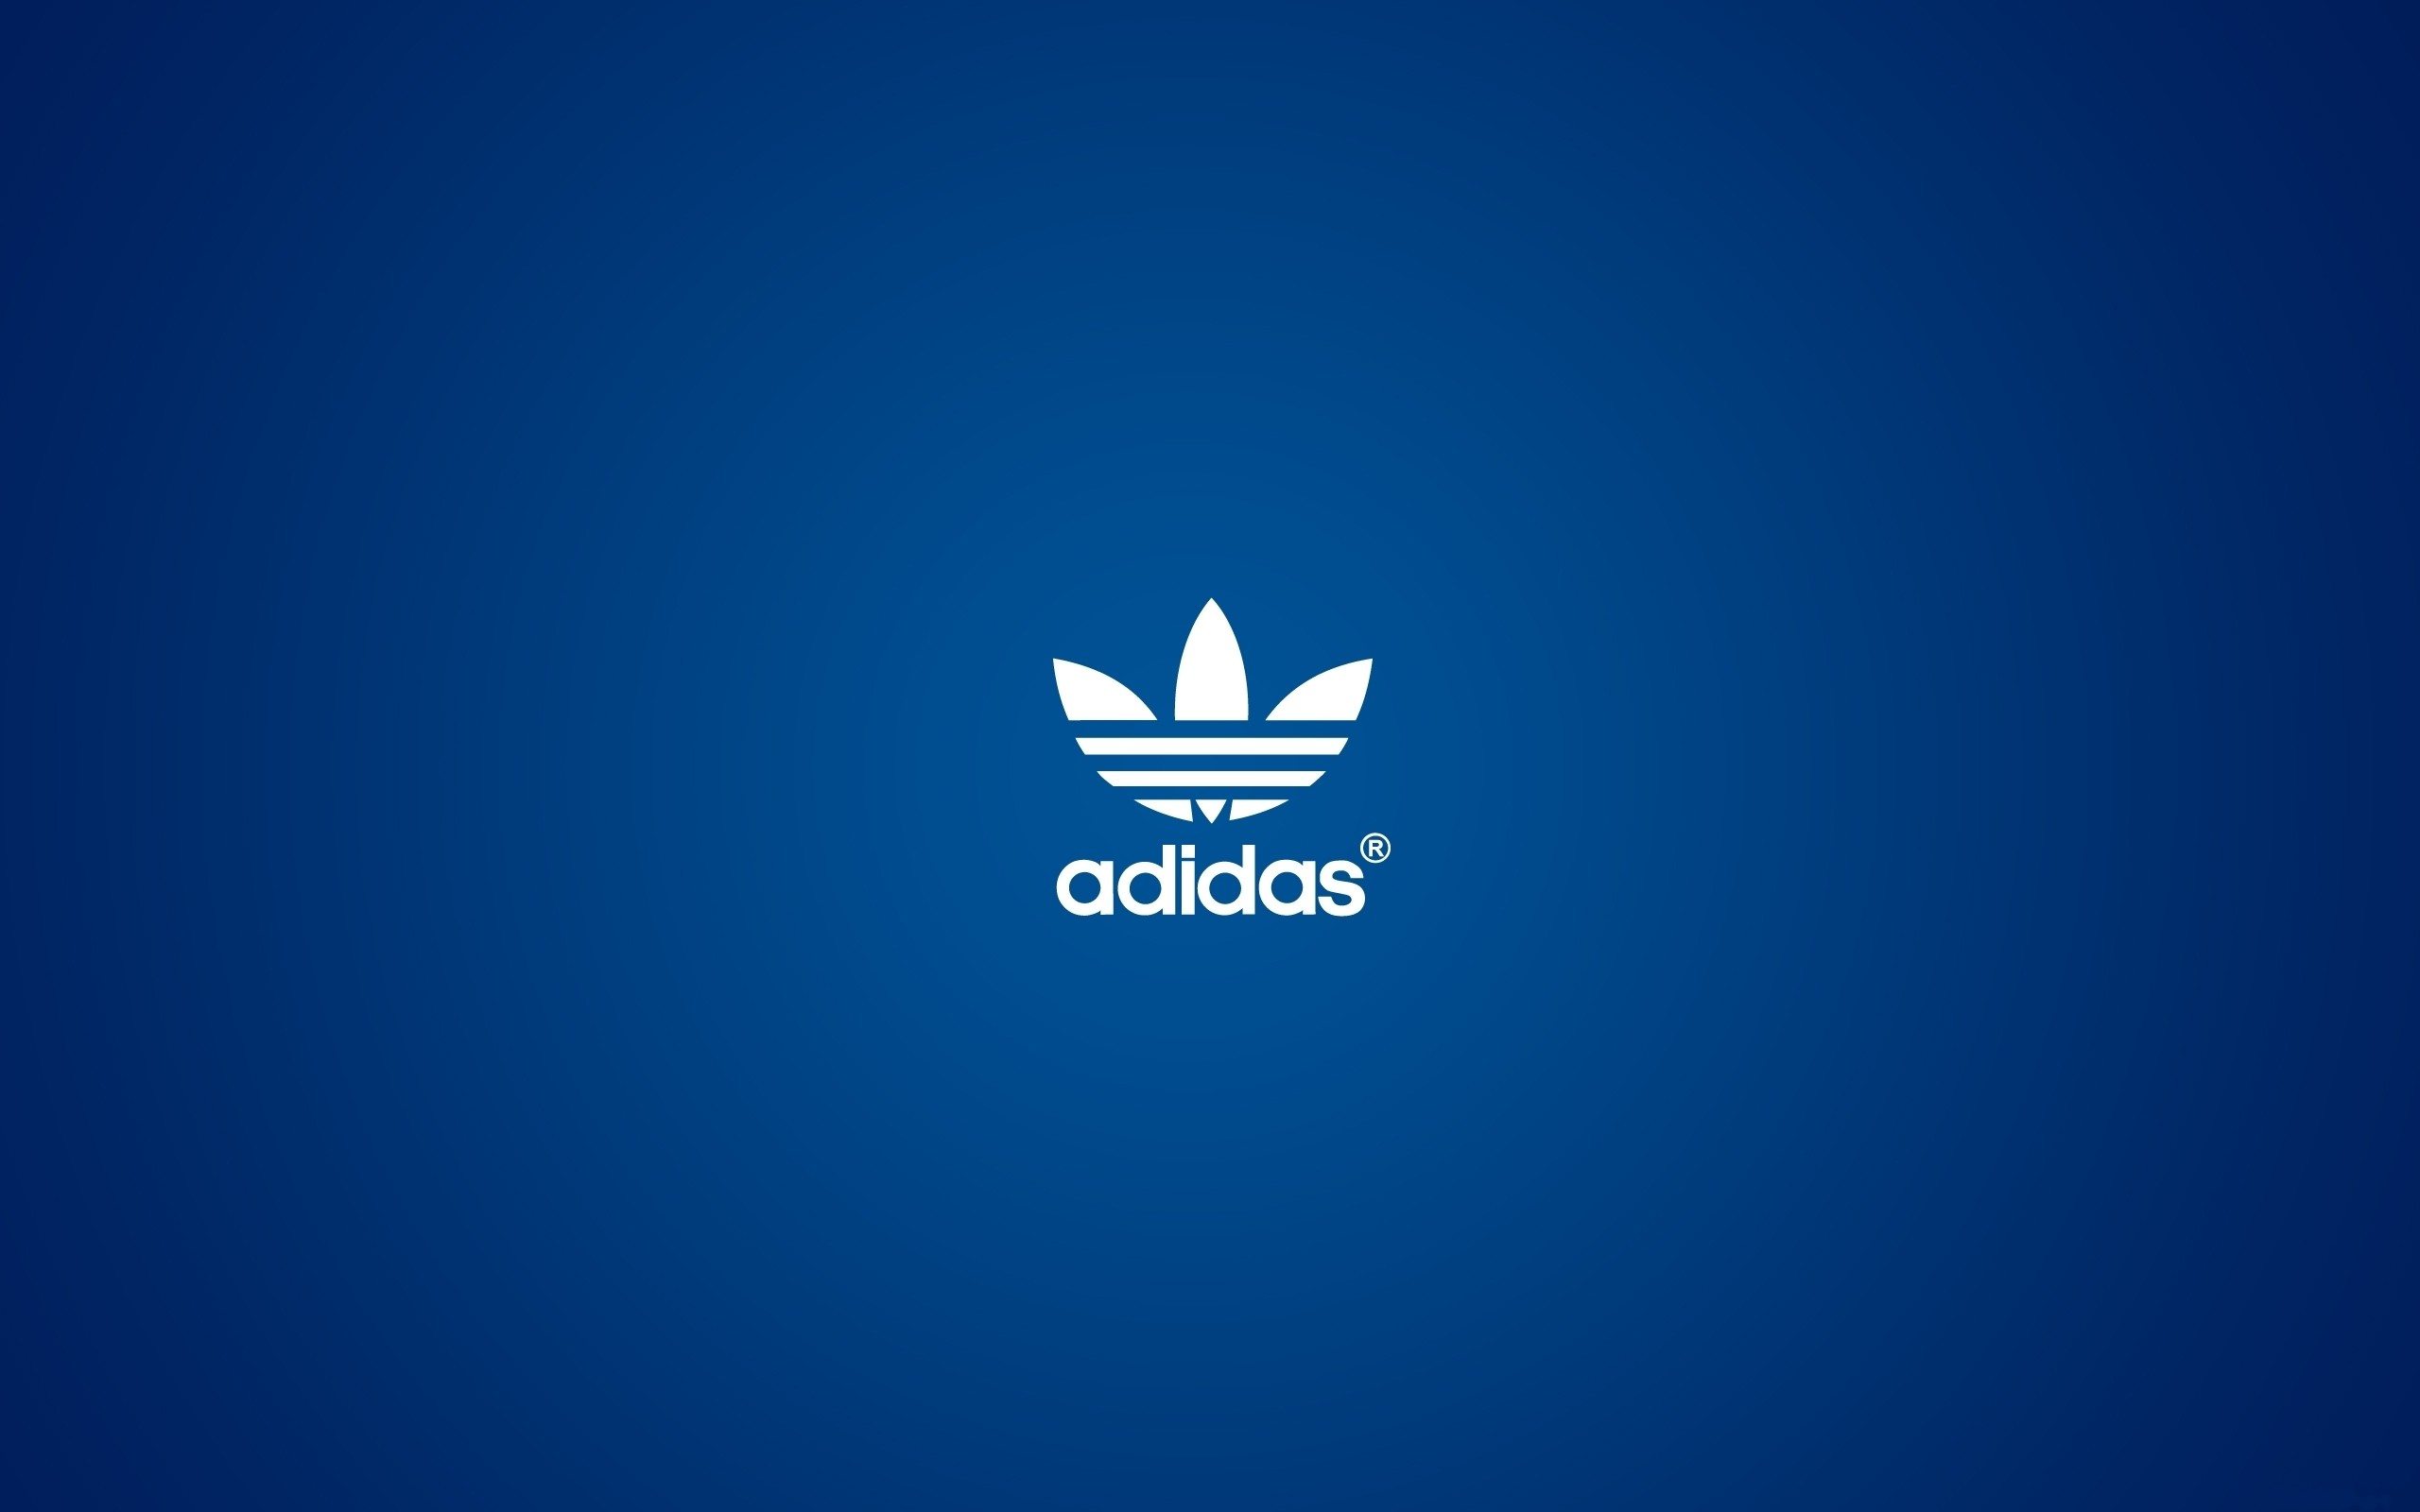 2560x1600 Products - Adidas Wallpaper